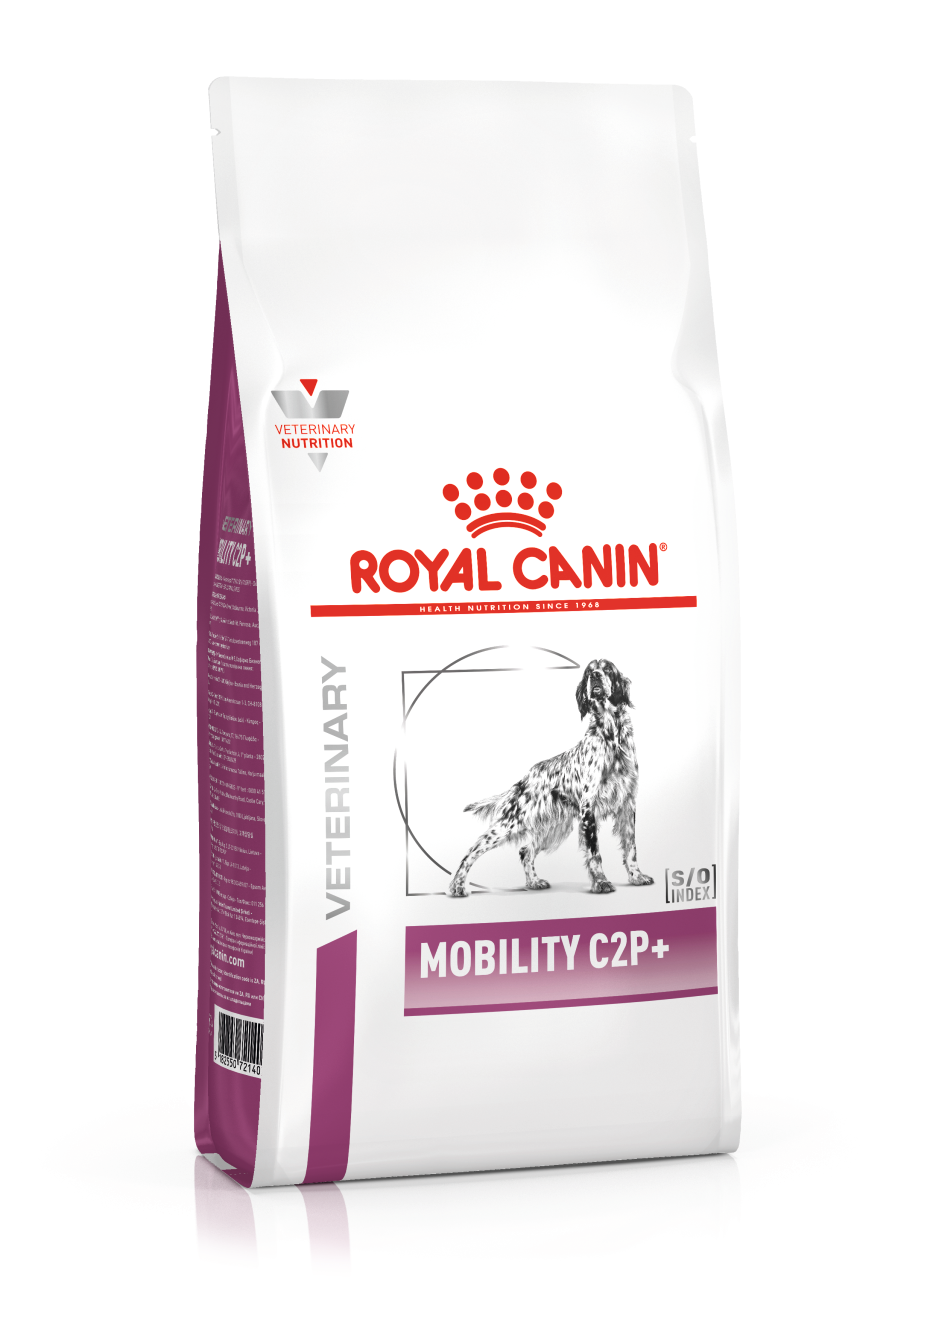 Mobility C2P+